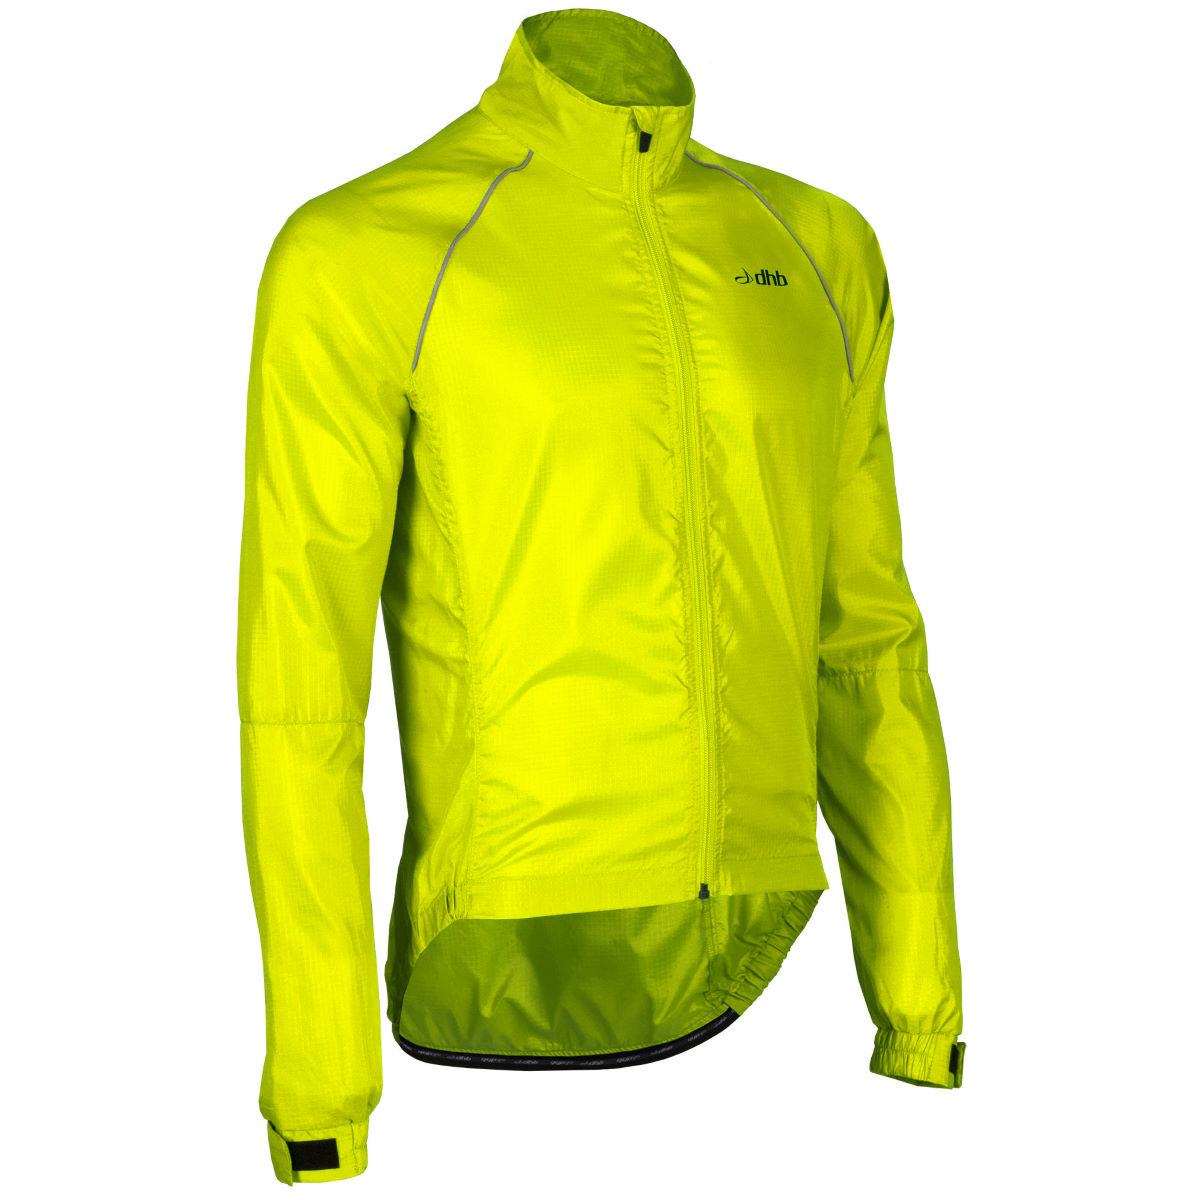 dhb Active Waterproof Hi Viz Jacket